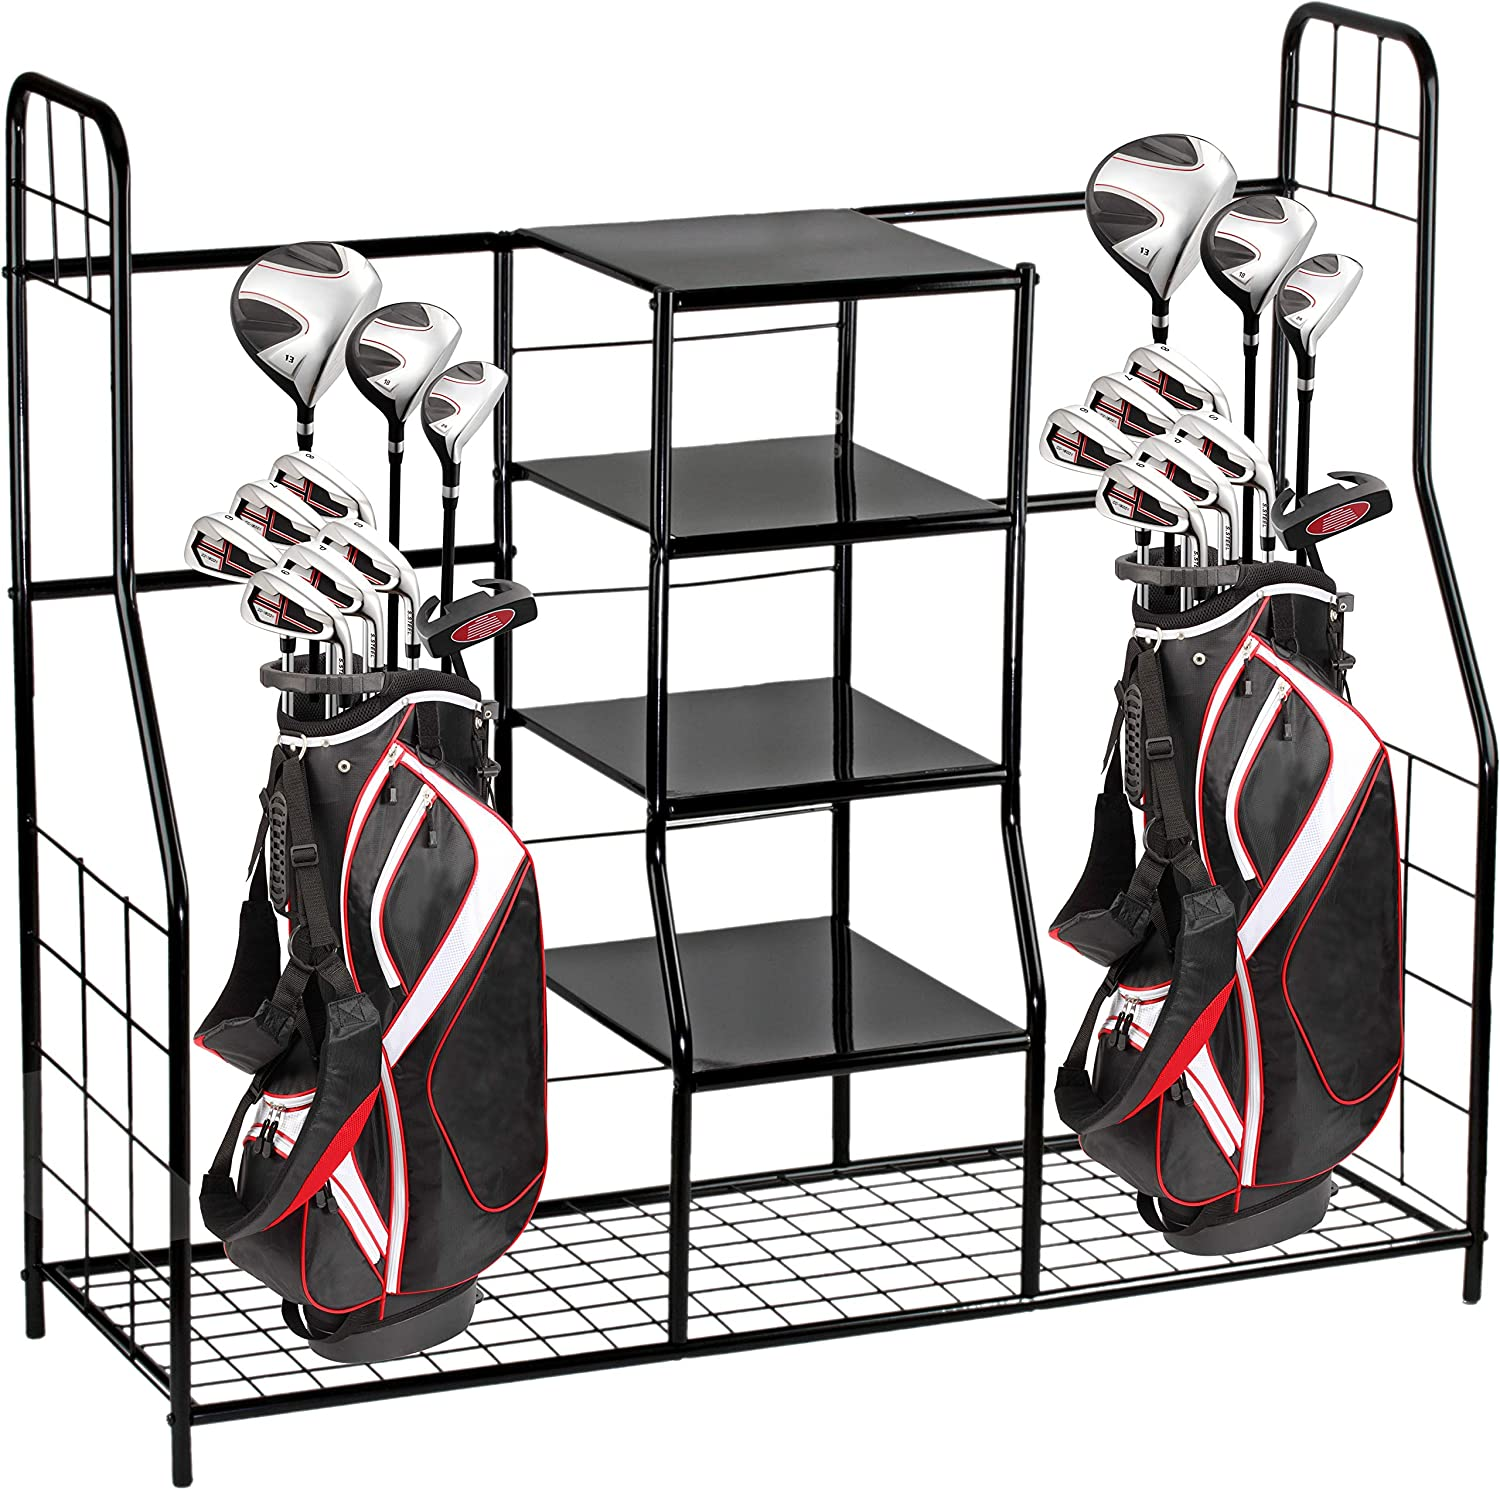 Home It Golf Bag Sports Dual Golf Storage Organizer Golf Organizer Rack  Sports Outdoors Jpg 1500x1489